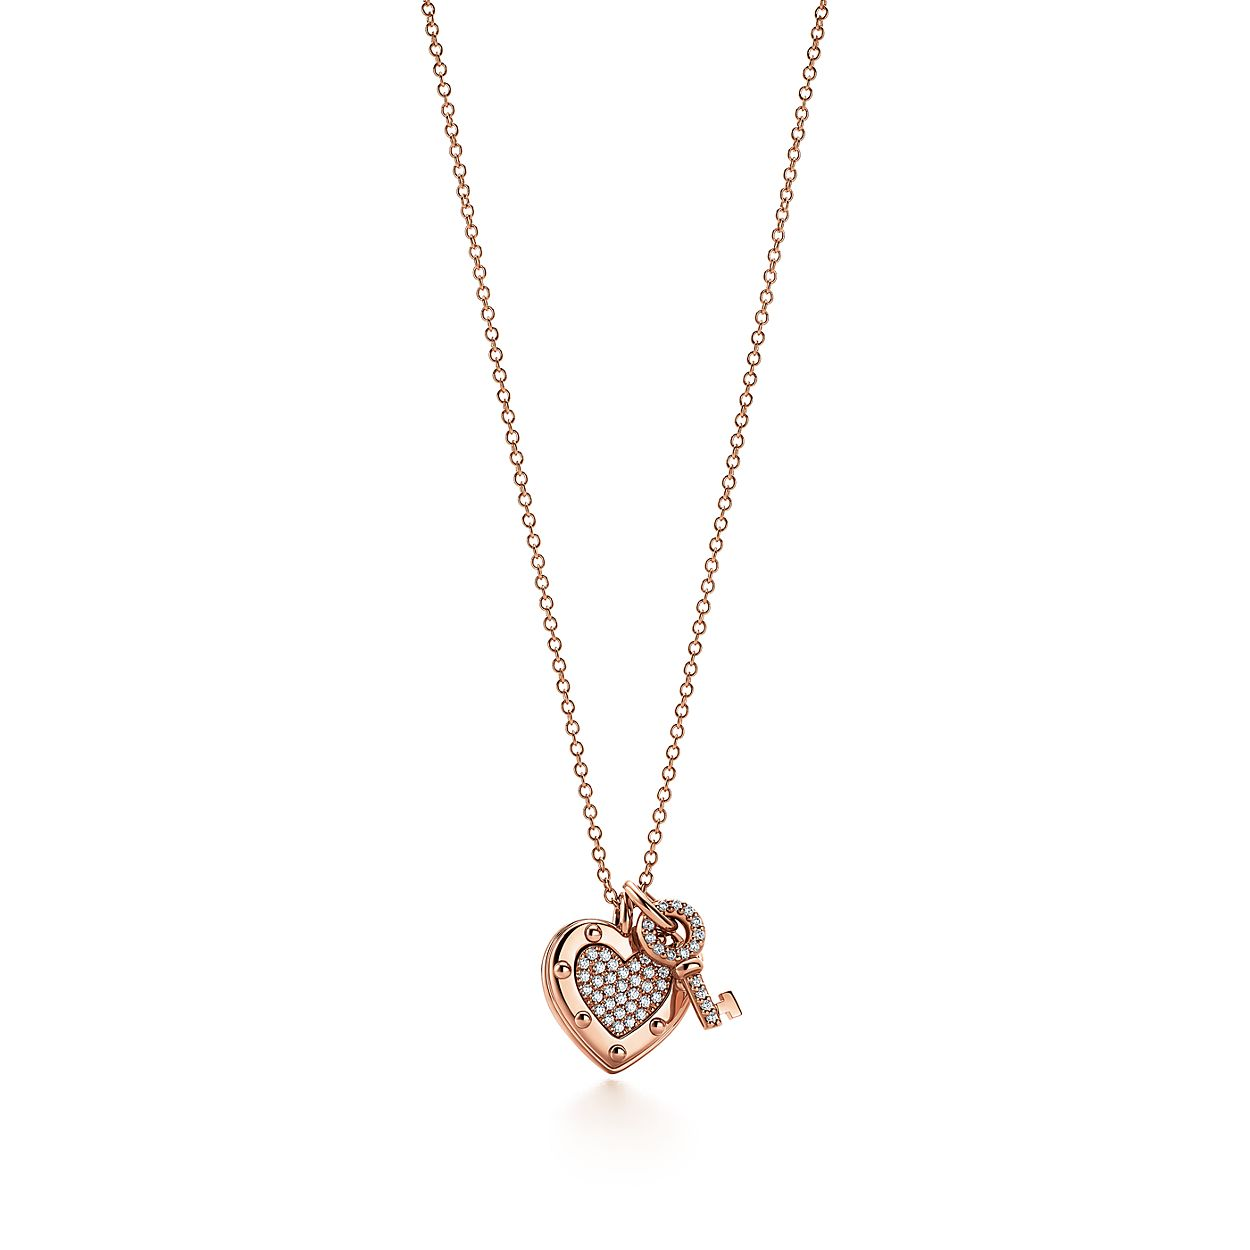 Return to tiffany love heart tag key pendant in 18k rose gold with return to tiffanylove heart tag key pendant aloadofball Image collections